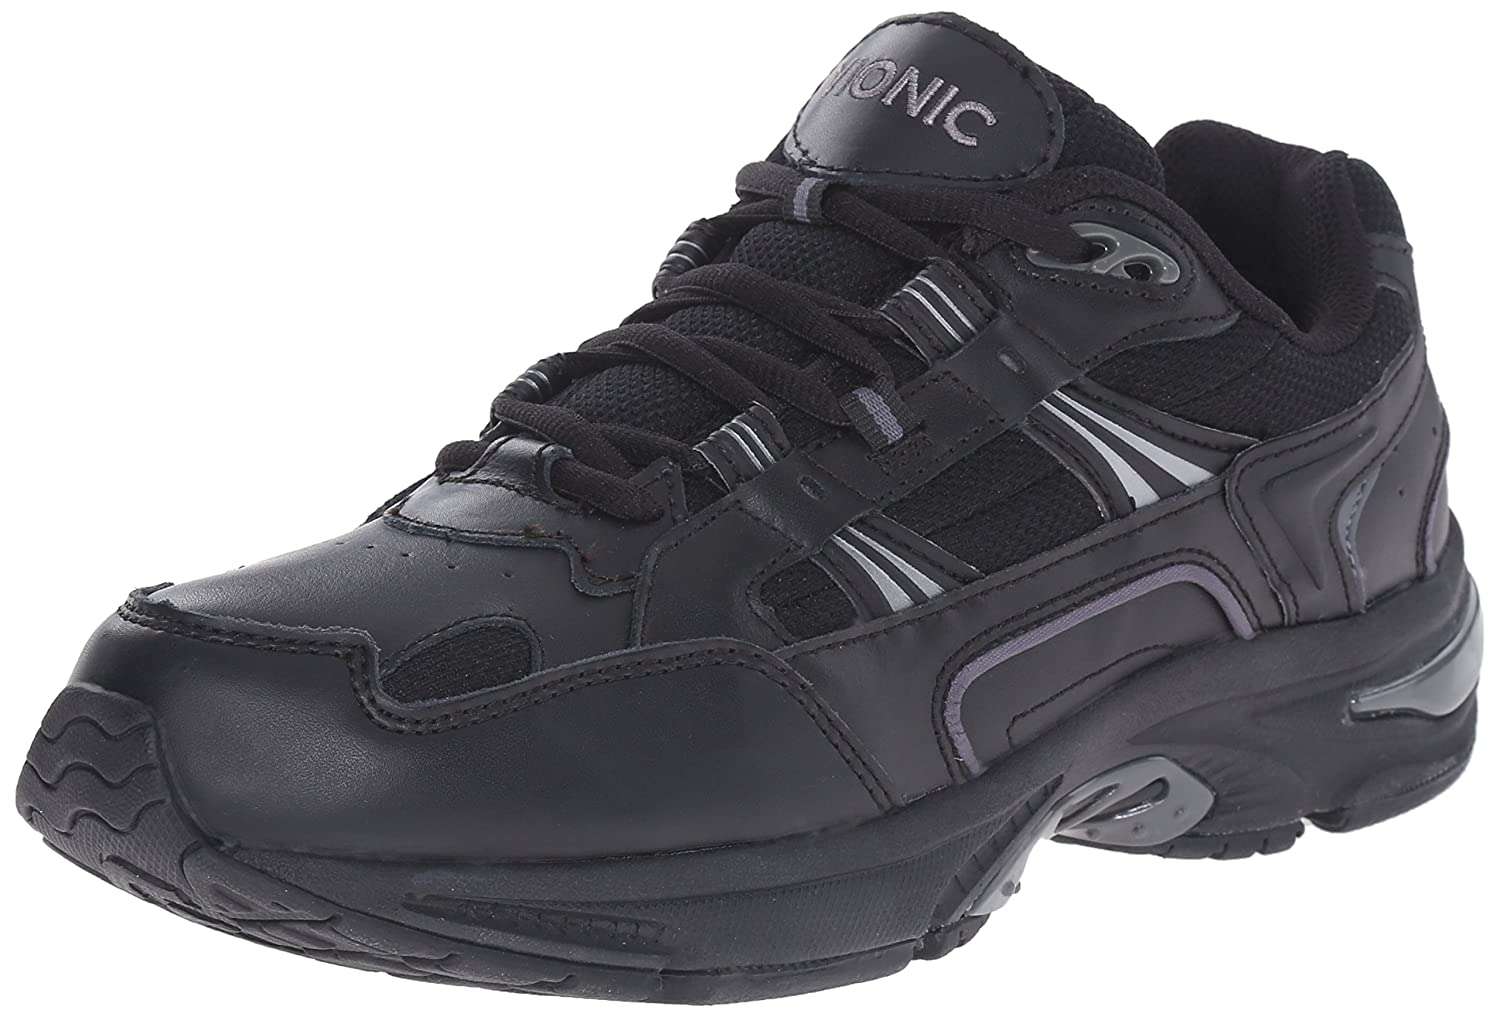 Vionic Men's Orthaheel Technology Walker